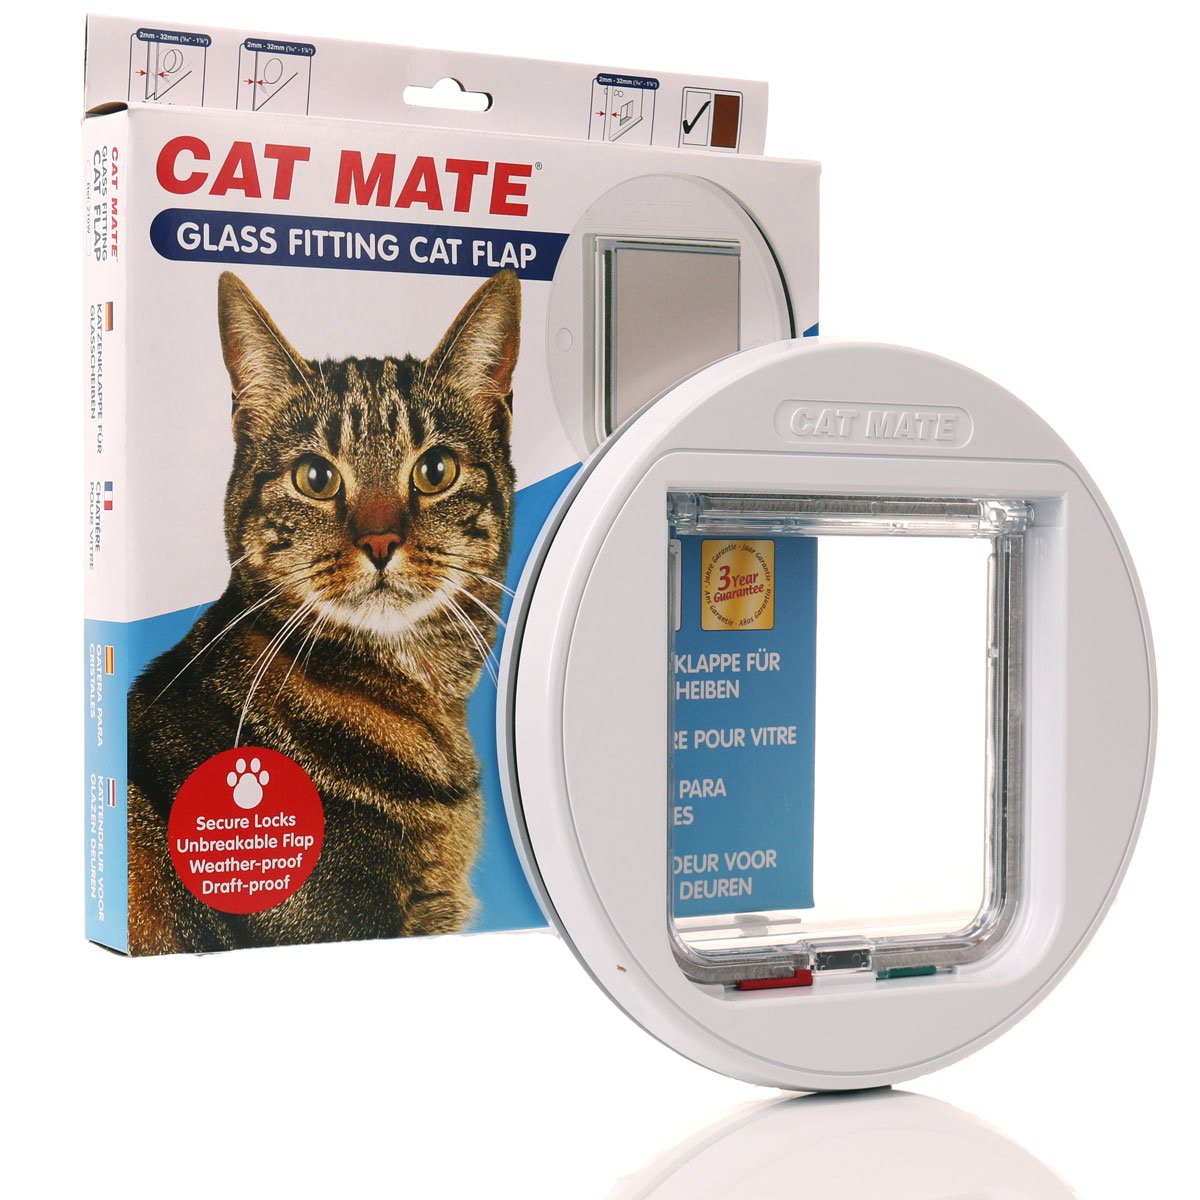 A Cat Mate cat flap designed for use in glass doors or windows